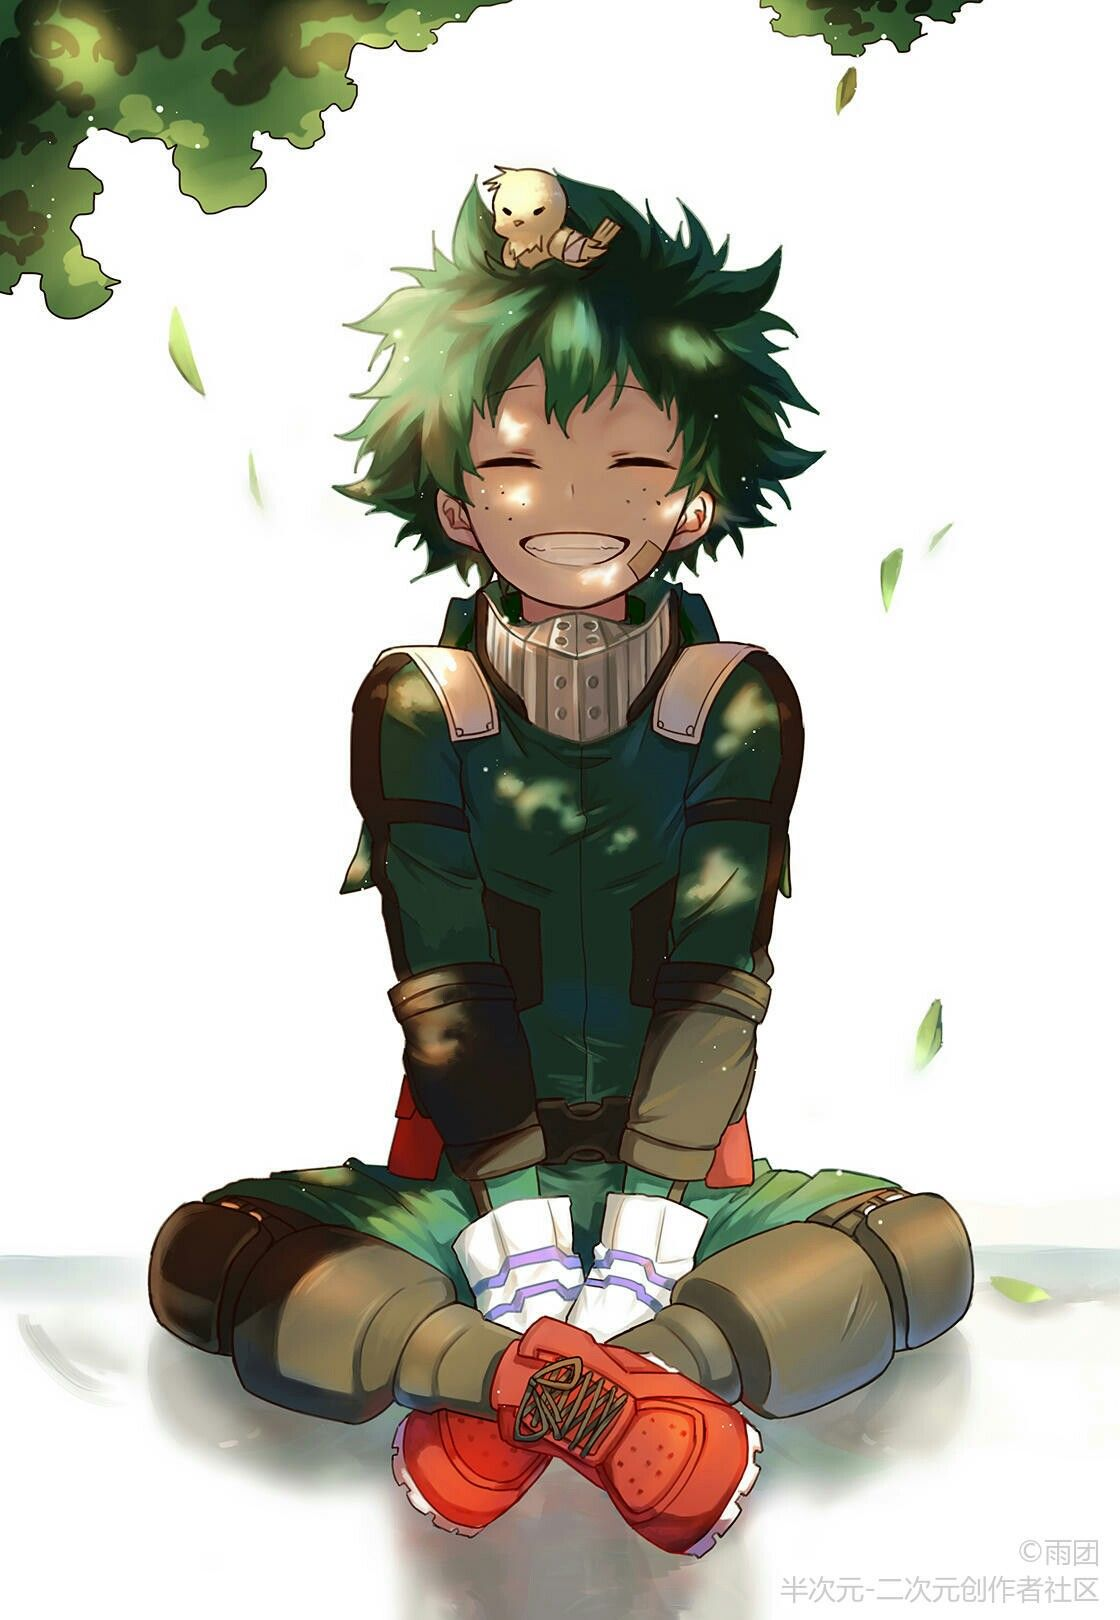 Midoriya Izuku My Hero Academia Anime Characters Deku Boku No Hero Cute Anime Guys